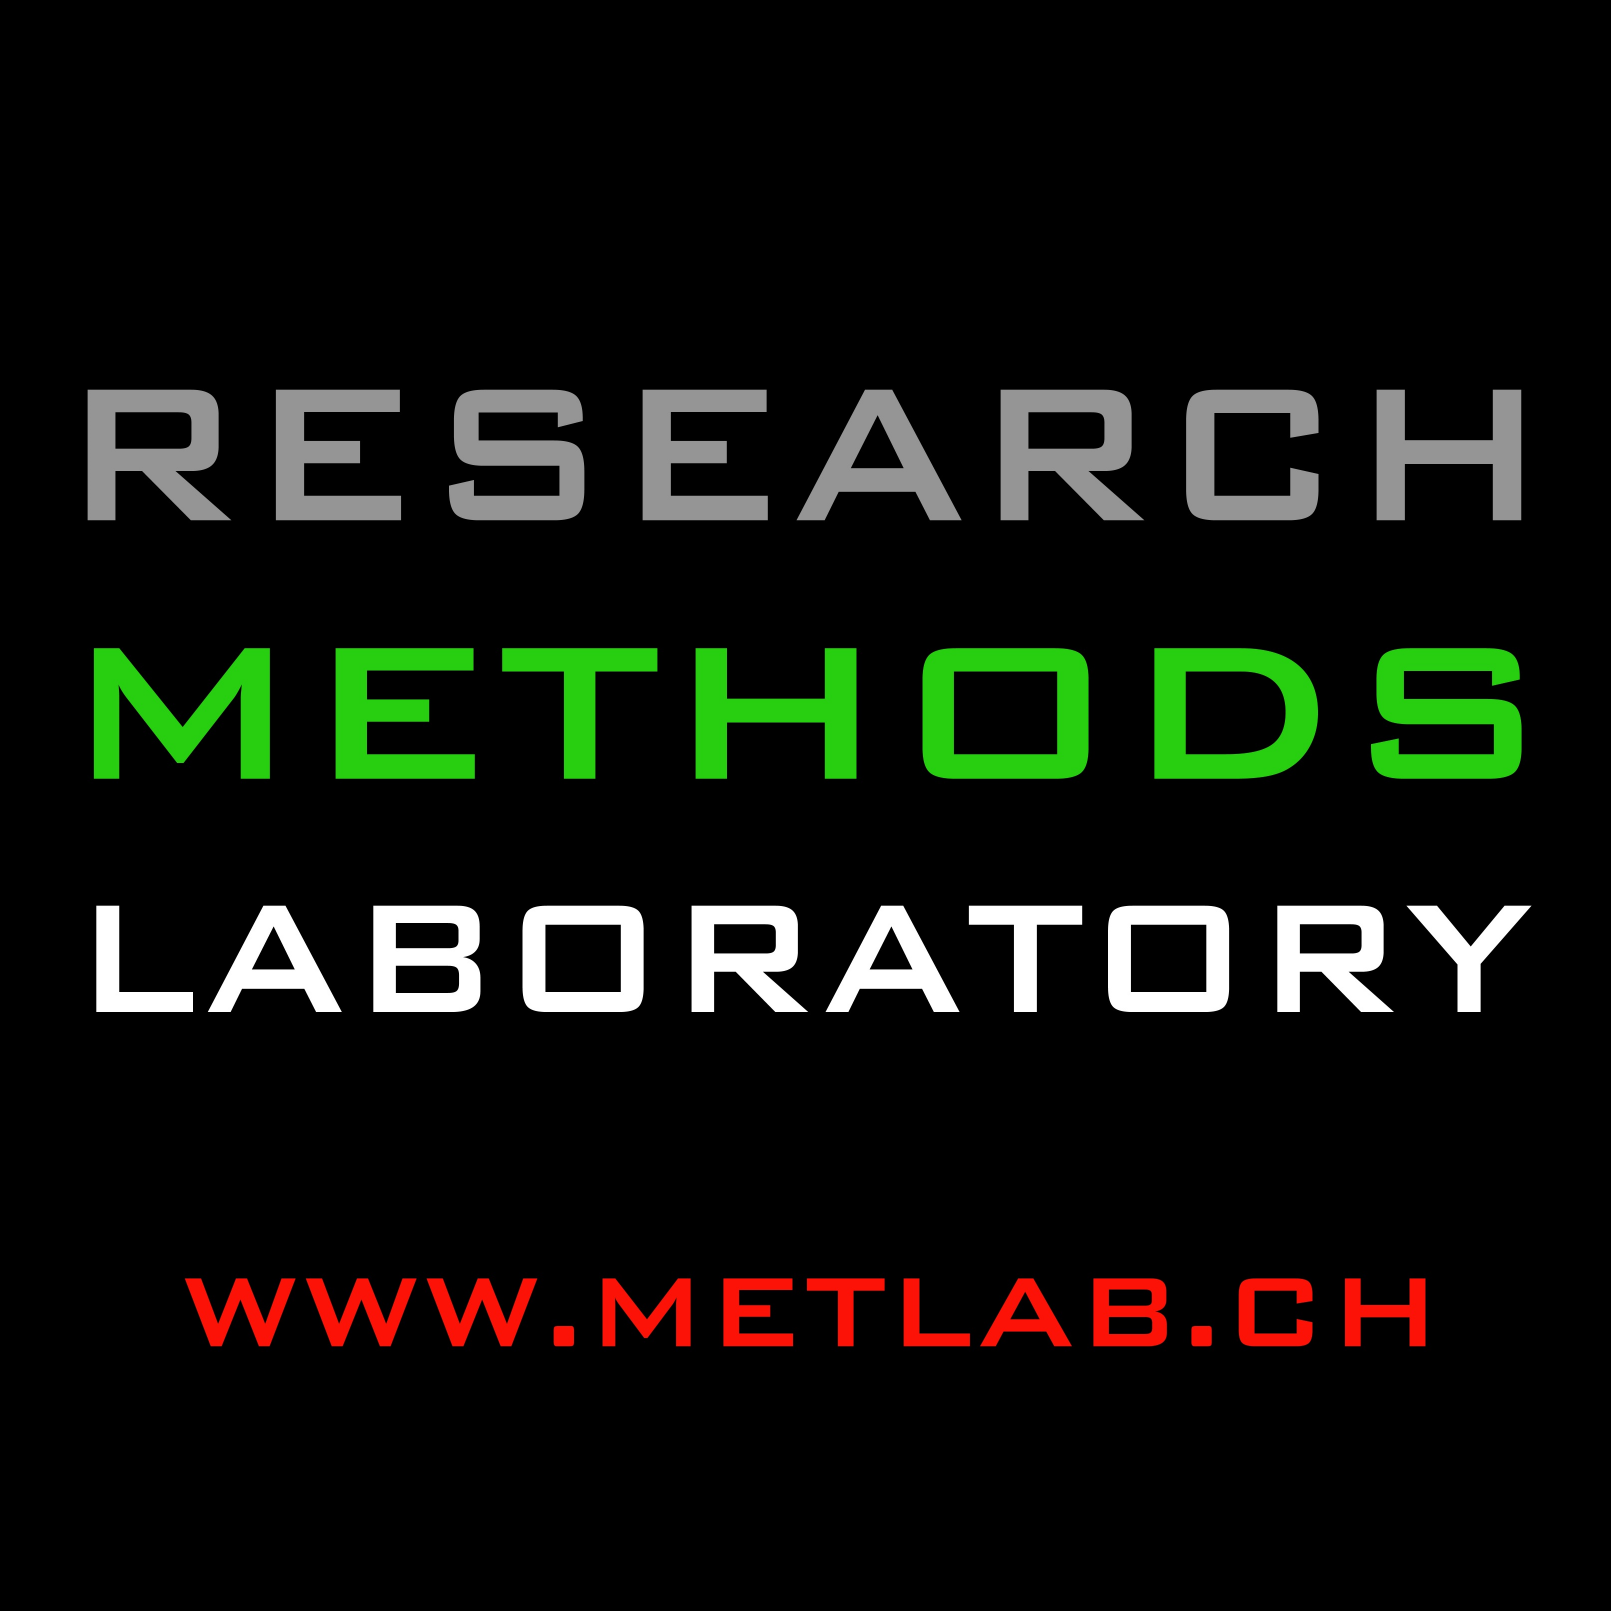 a research on laboratory techniques Welcome to the combustion research laboratory the combustion research laboratory (crl) of the paul scherrer institute is part of the general energy research research topics include laser diagnostics in combustion with emphasis on linear and non-linear spectroscopic techniques, turbulent premixed combustion in high-pressure.